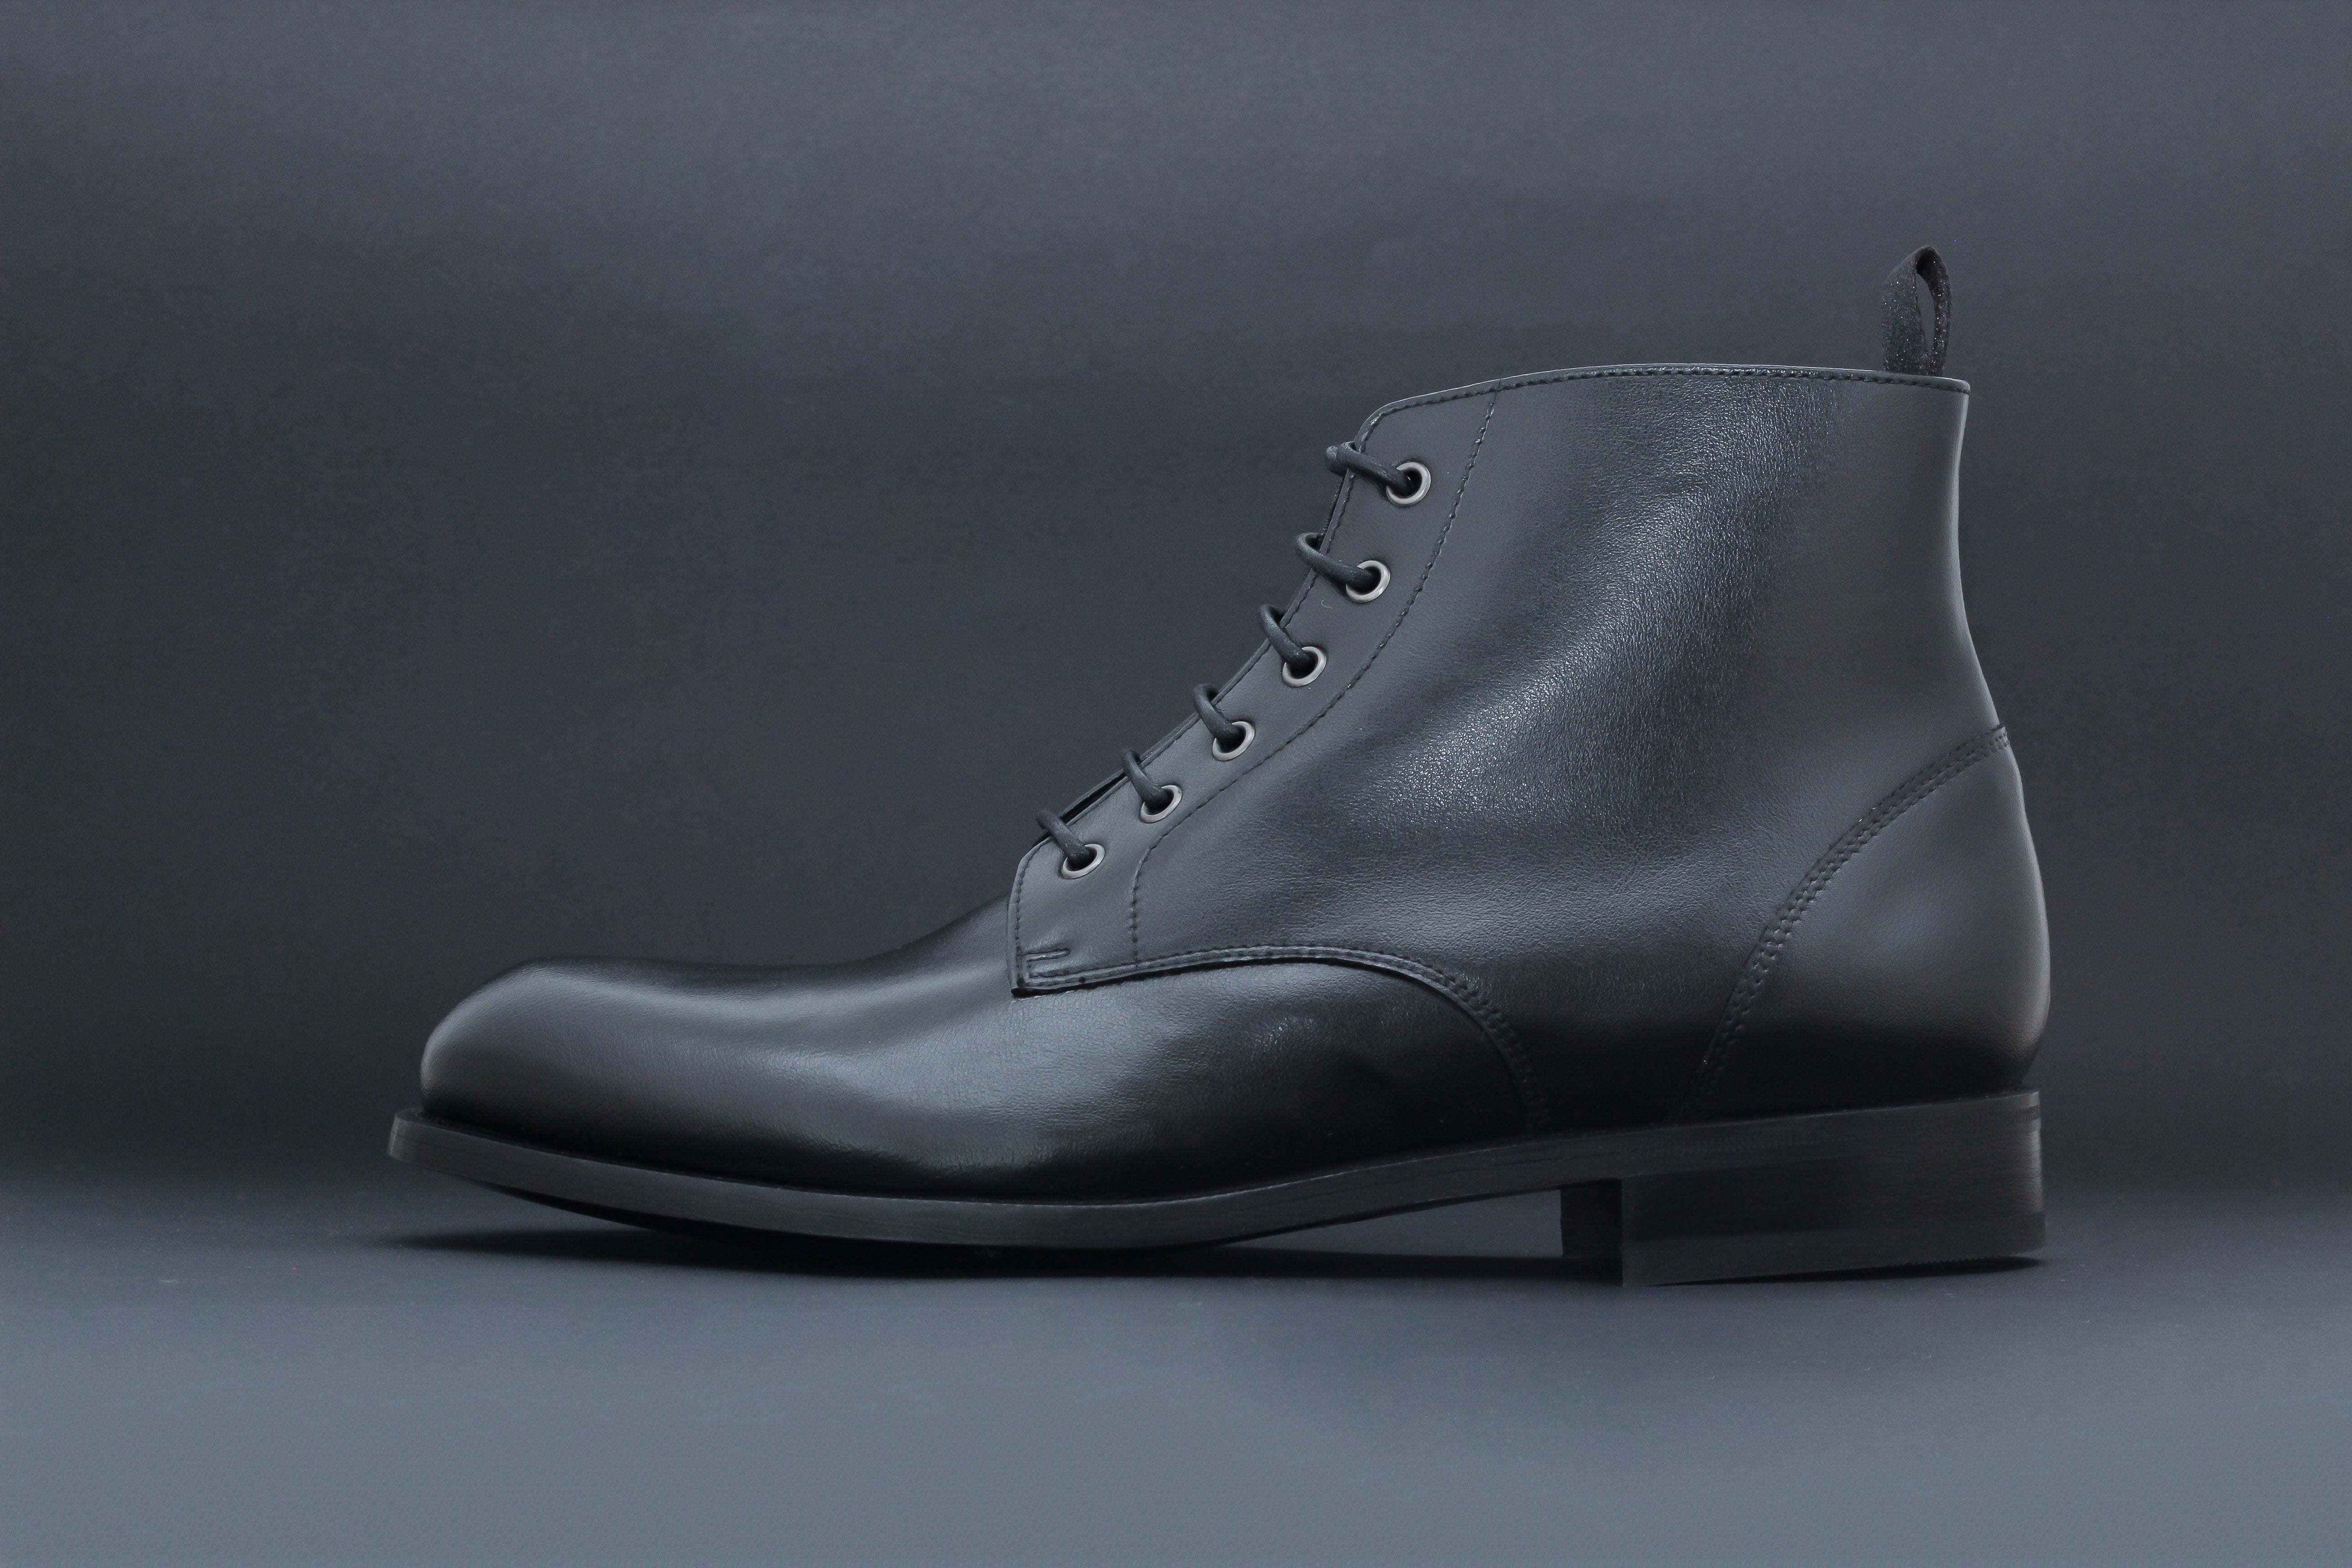 Vegan Boots - Vyom London - Vegan Shoes